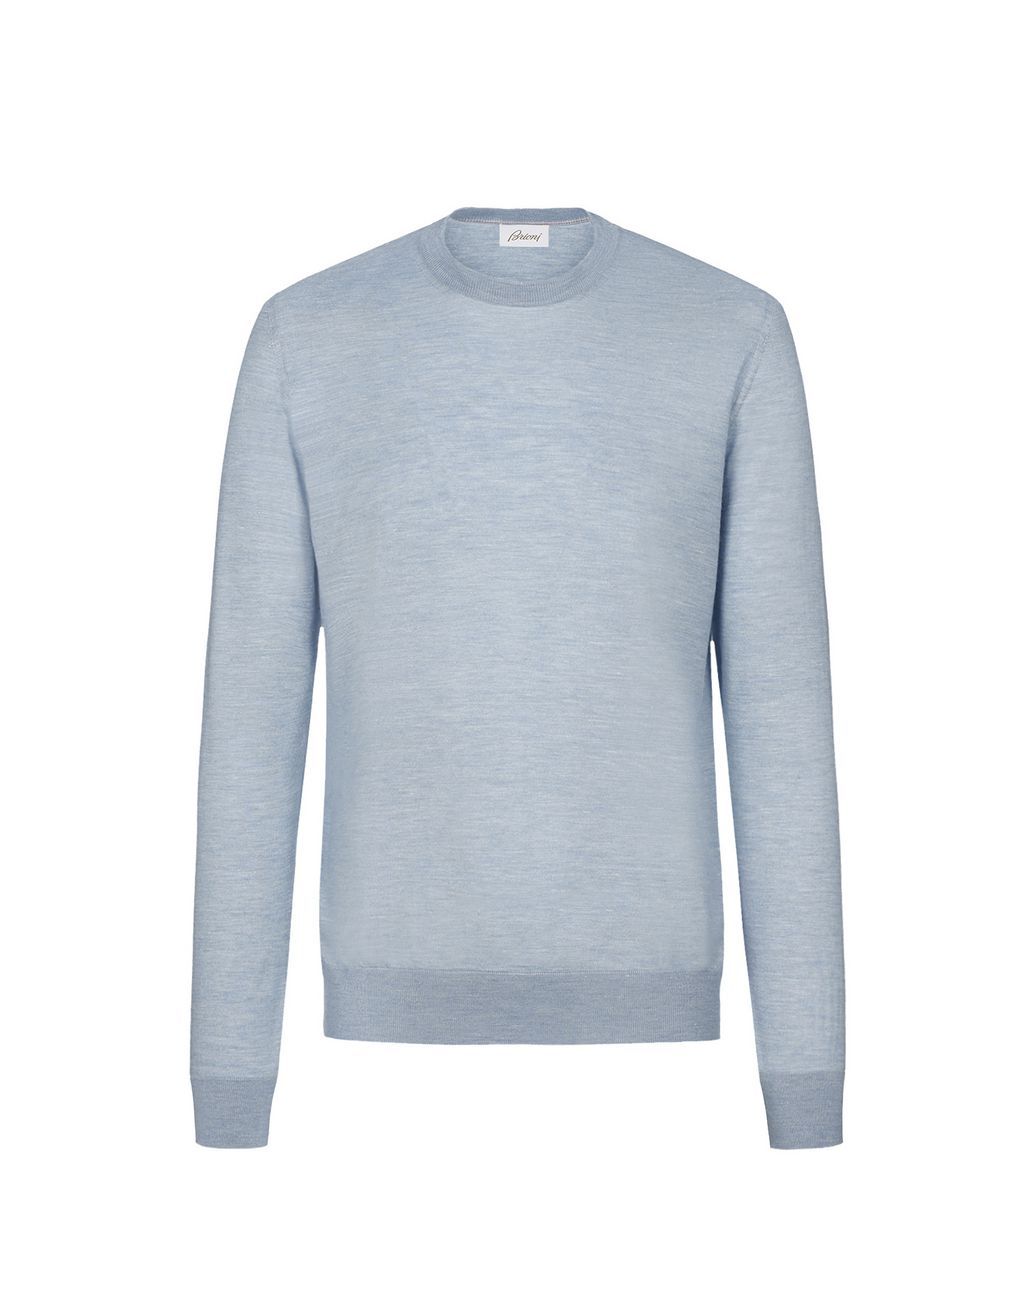 BRIONI Light Blue Crew Neck Sweater Knitwear [*** pickupInStoreShippingNotGuaranteed_info ***] f